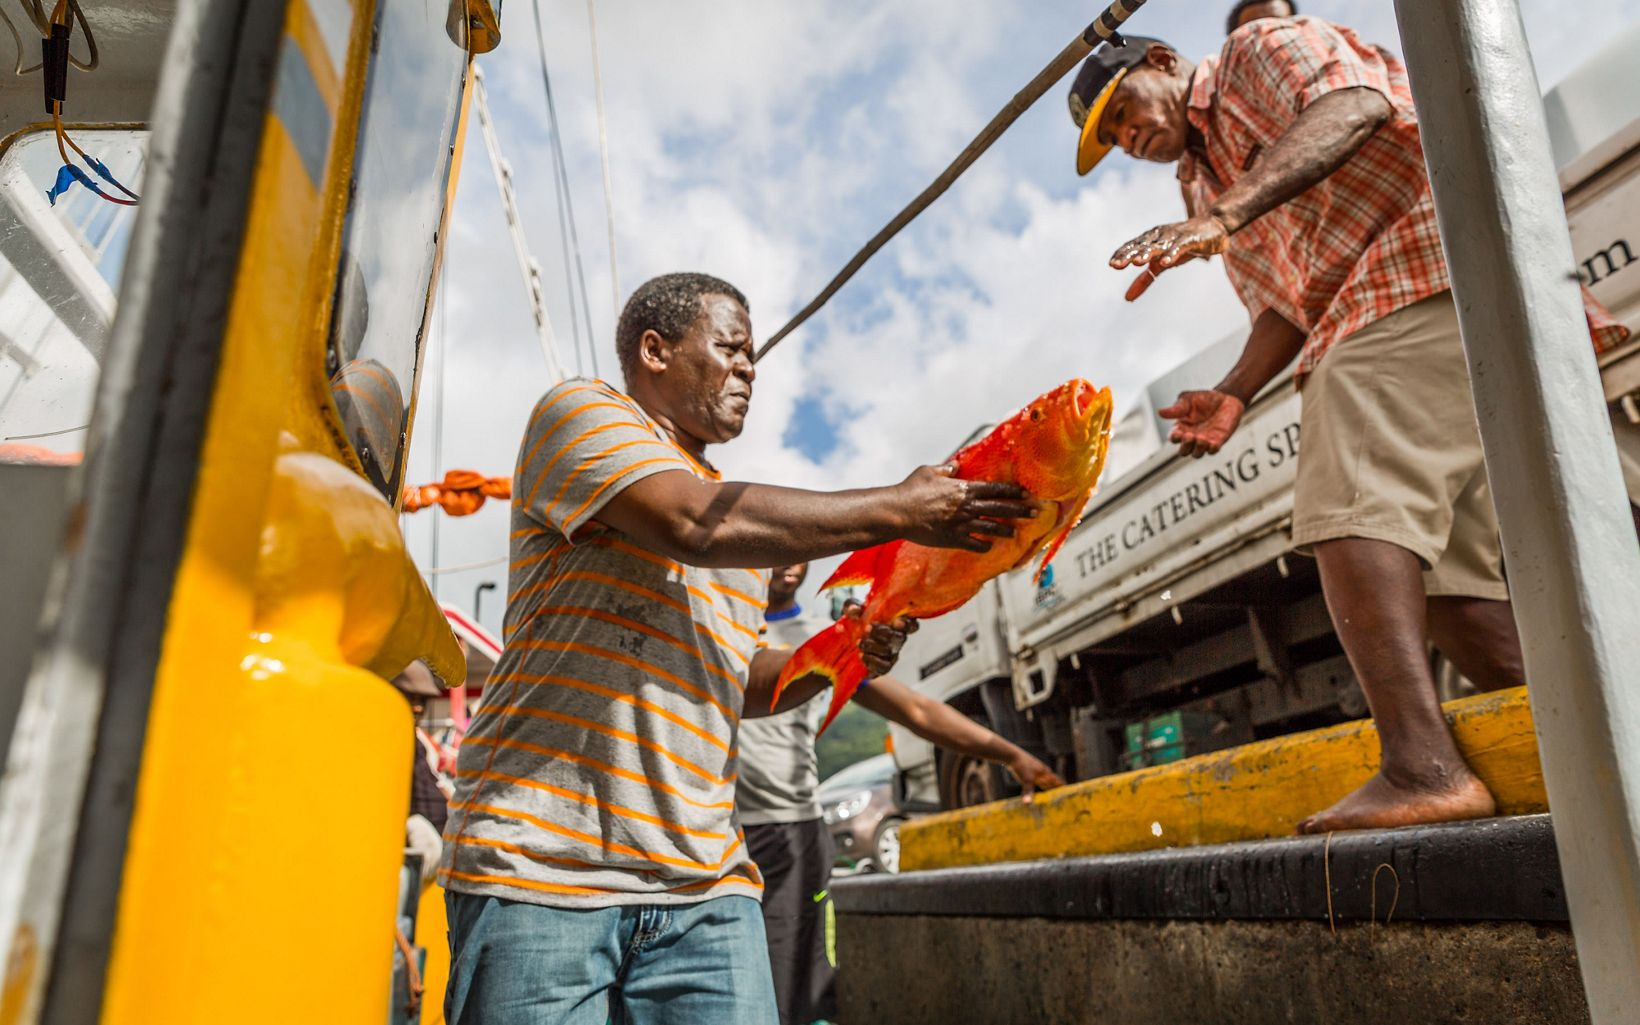 Jean de Dieu Leonel, captain of the Felicite, unloading unidentified bottom fish from the Felicite, Seychelles.